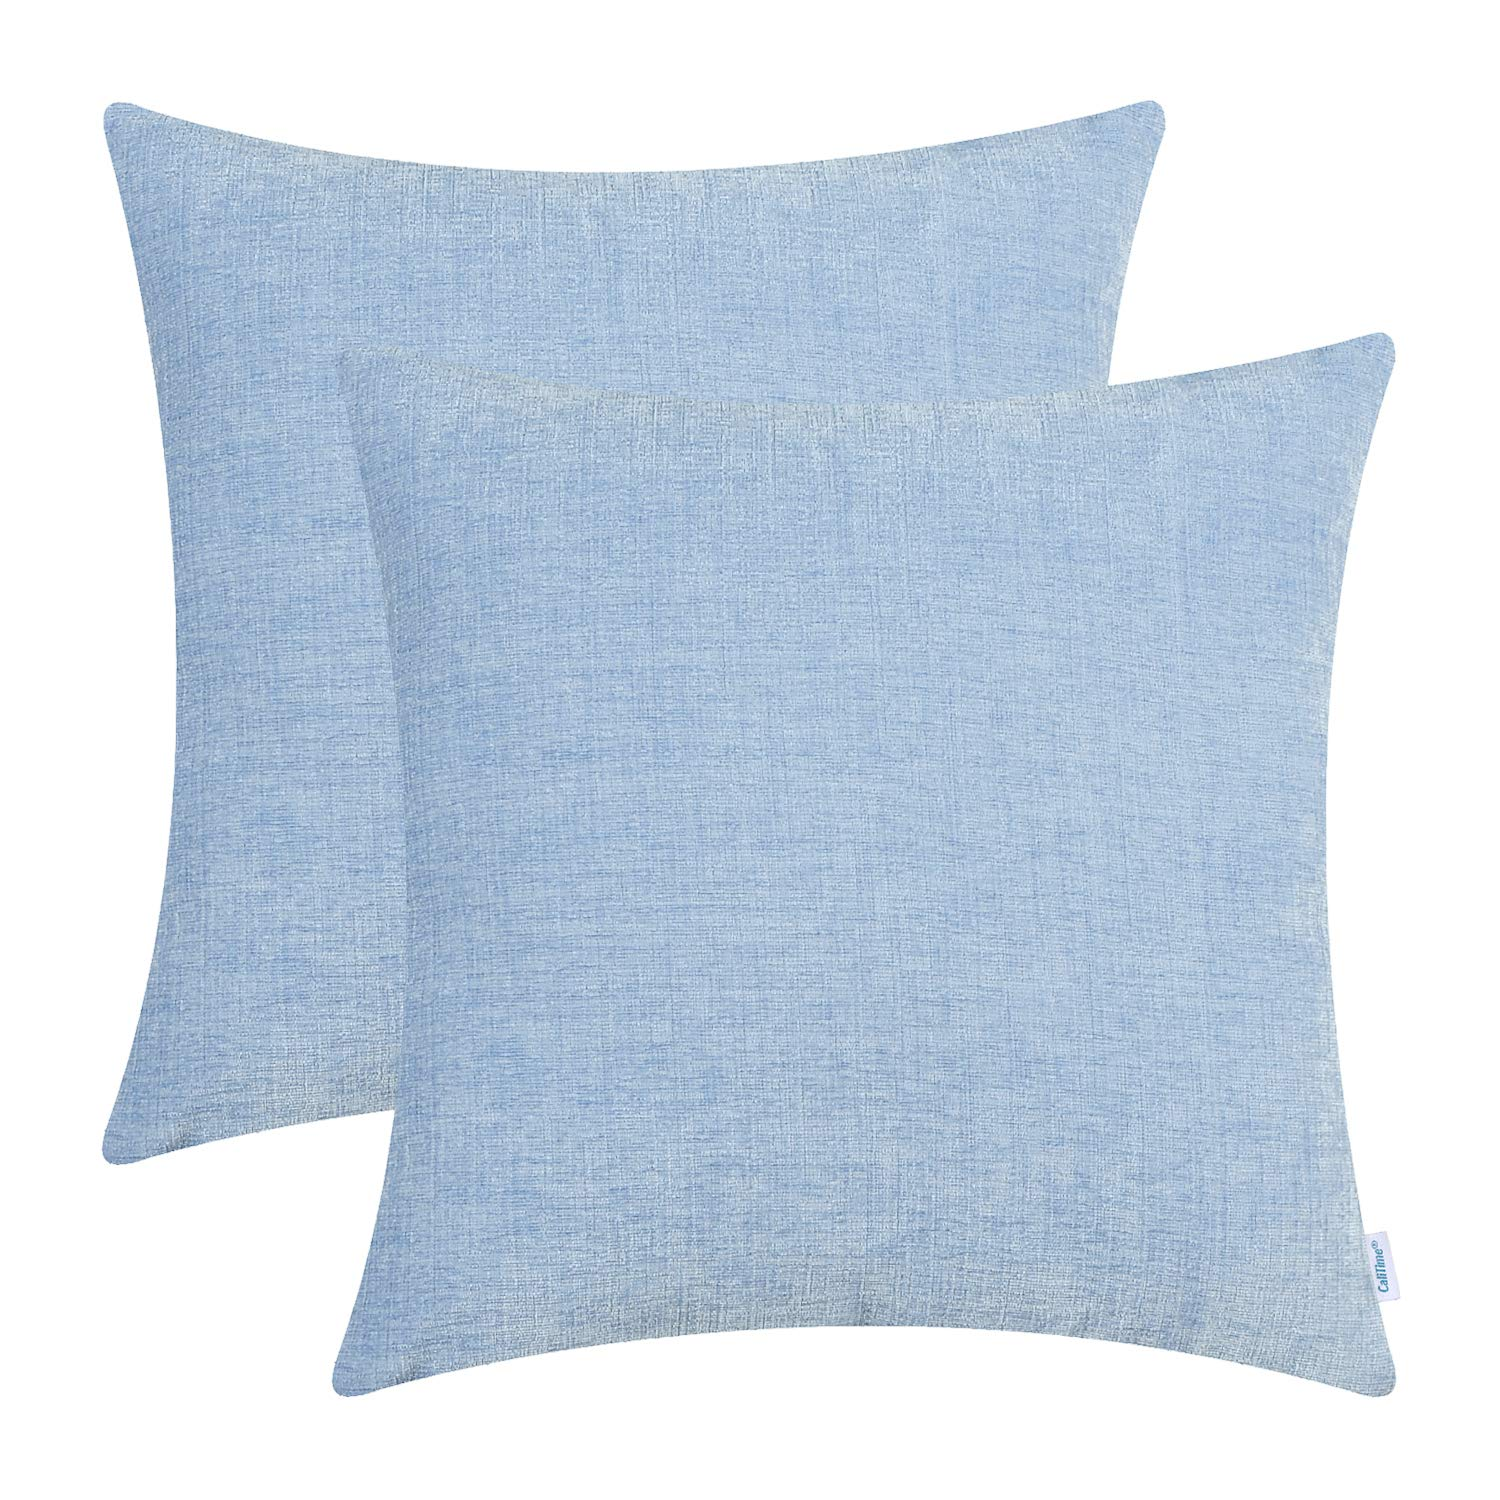 CaliTime Pack of 2 Cozy Throw Pillow Covers Cases for Couch Sofa Home Decoration Solid Dyed Soft Chenille 16 X 16 Inches Baby Blue